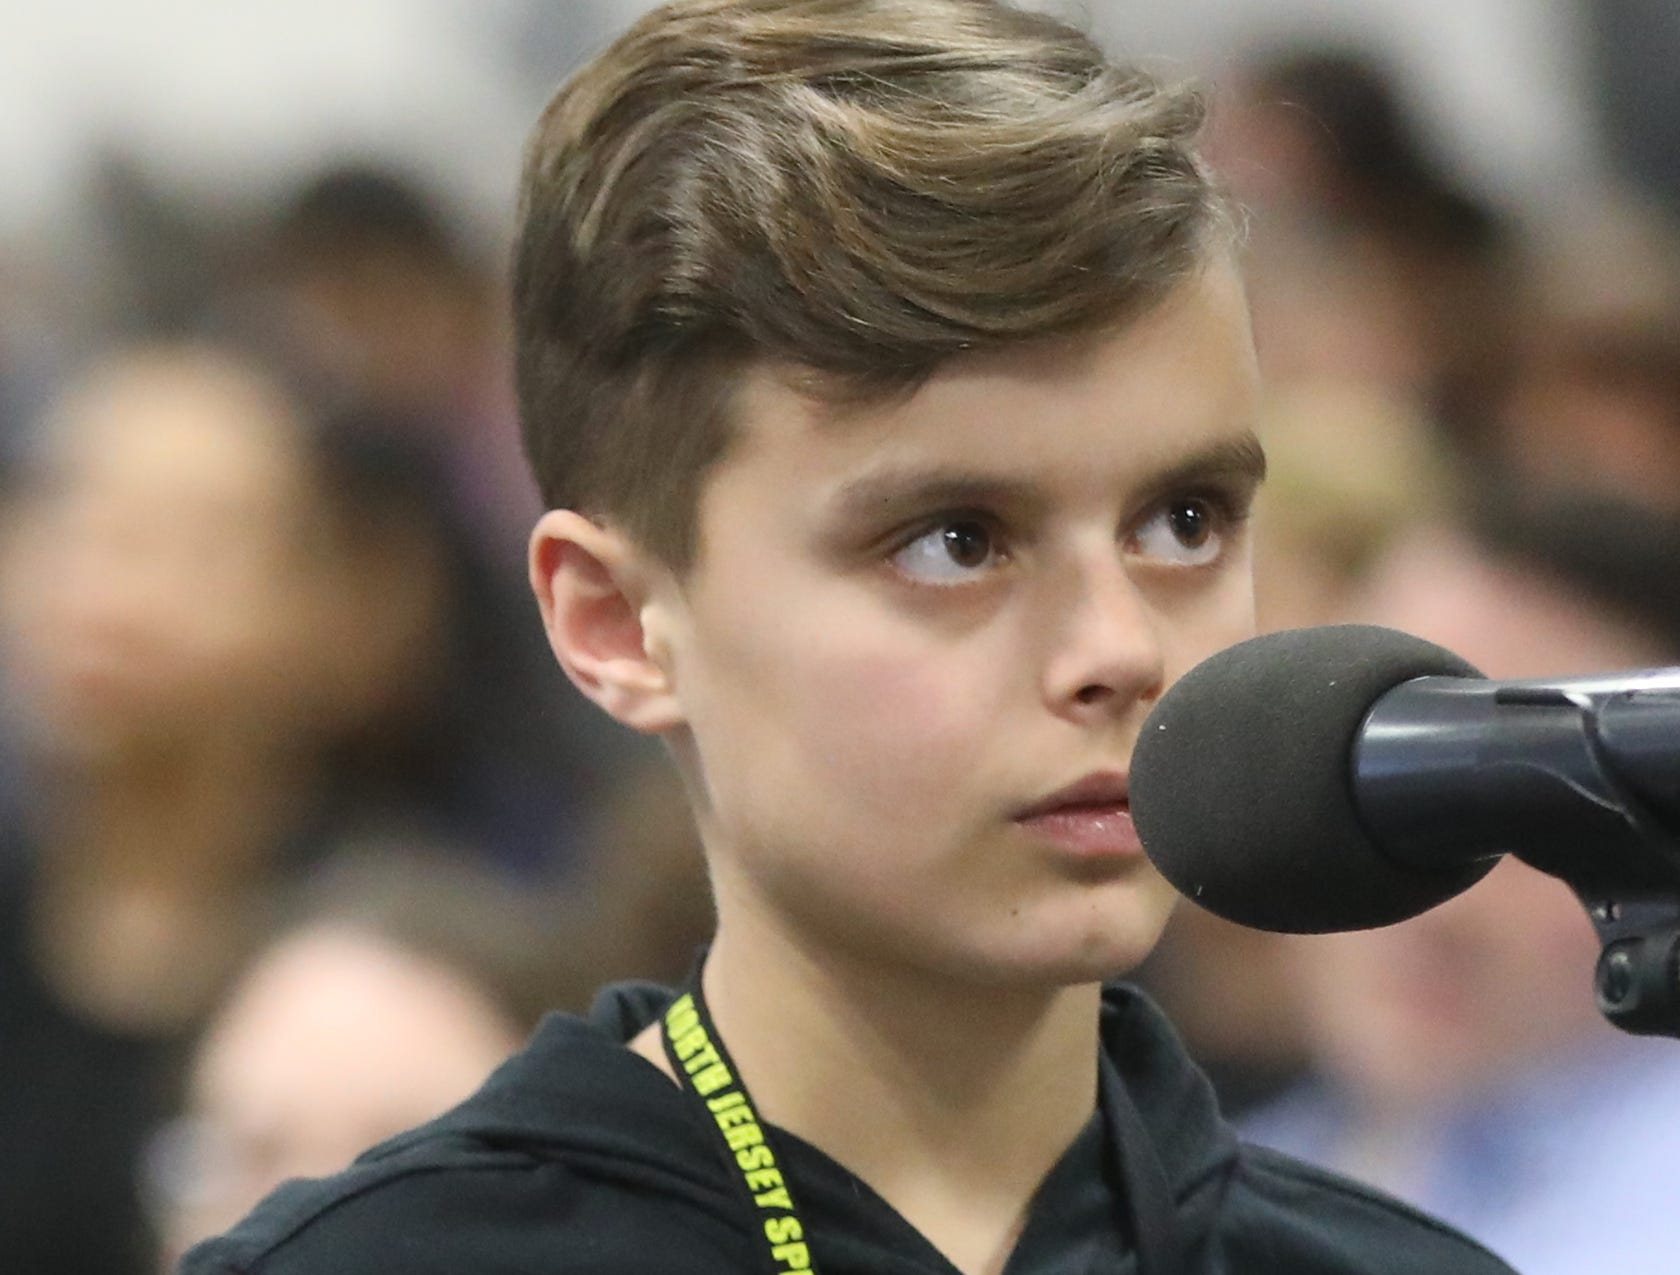 Quinn Juhlin, of Bloomingdale, competes in the first round of the 2019 North Jersey Spelling Bee, in Paramus. Thursday, March 14, 2019